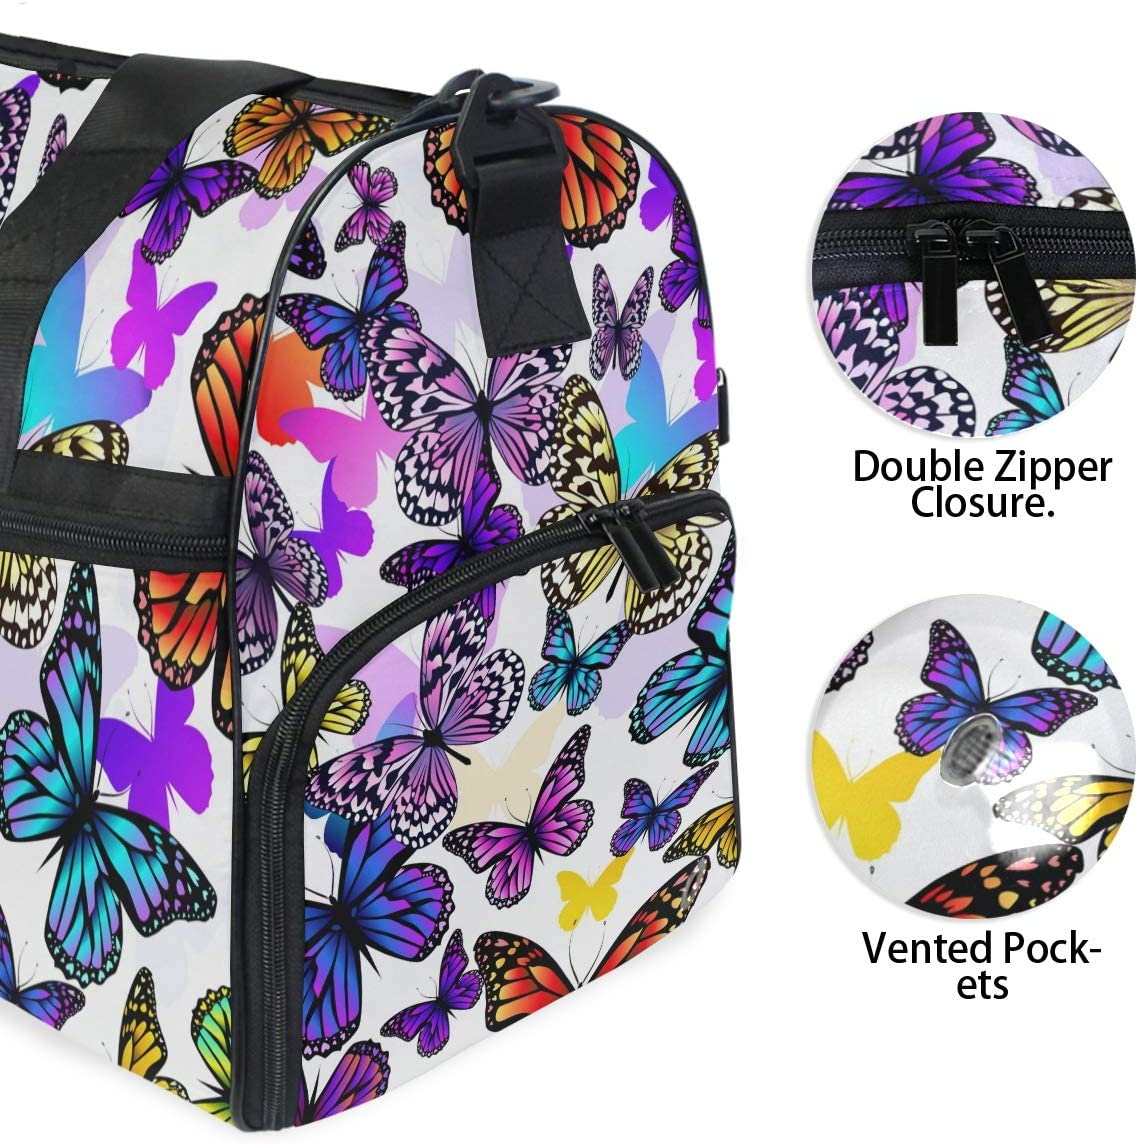 FAJRO Gym Bag Travel Duffel Express Weekender Bag Colorful Butterfly Group Carry On Luggage with Shoe Pouch